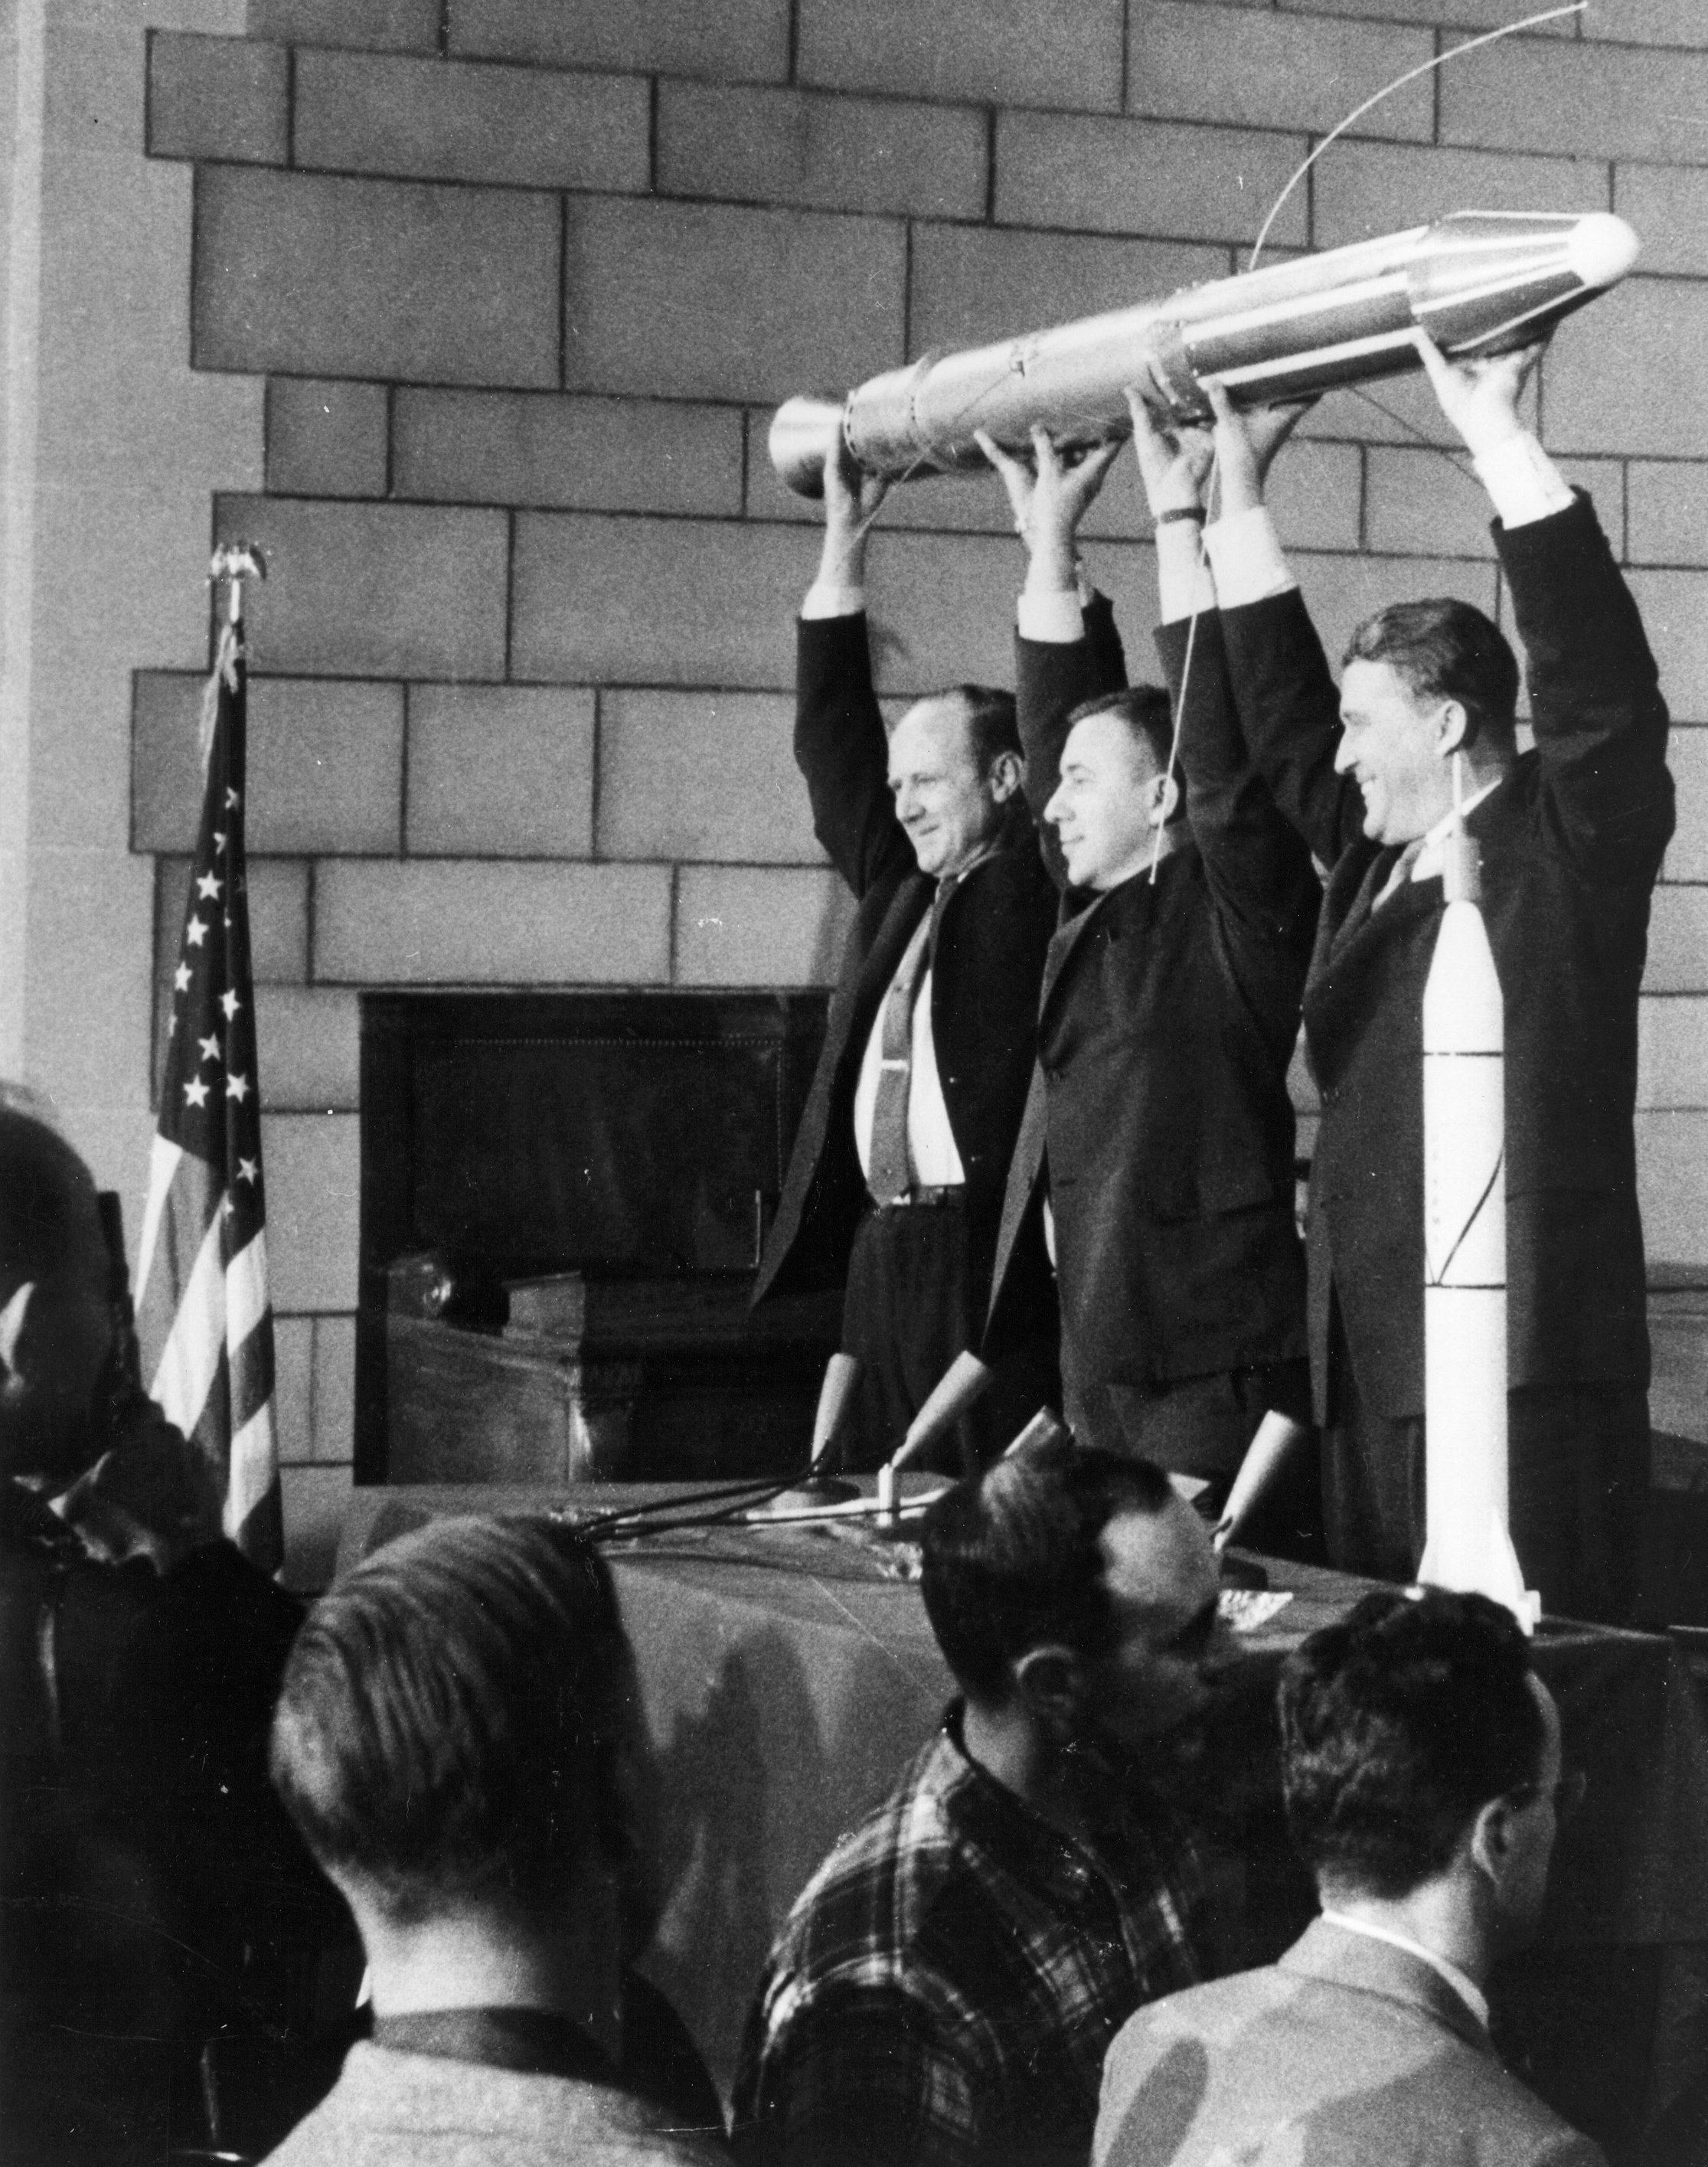 The three men behind the successful launch of Explorer 1 on January 31, 1958:  Dr. William H. Pickering (left), Dr. James A. van Allen (center) and Dr. Wernher von Braun (right). (Credit: NASA)